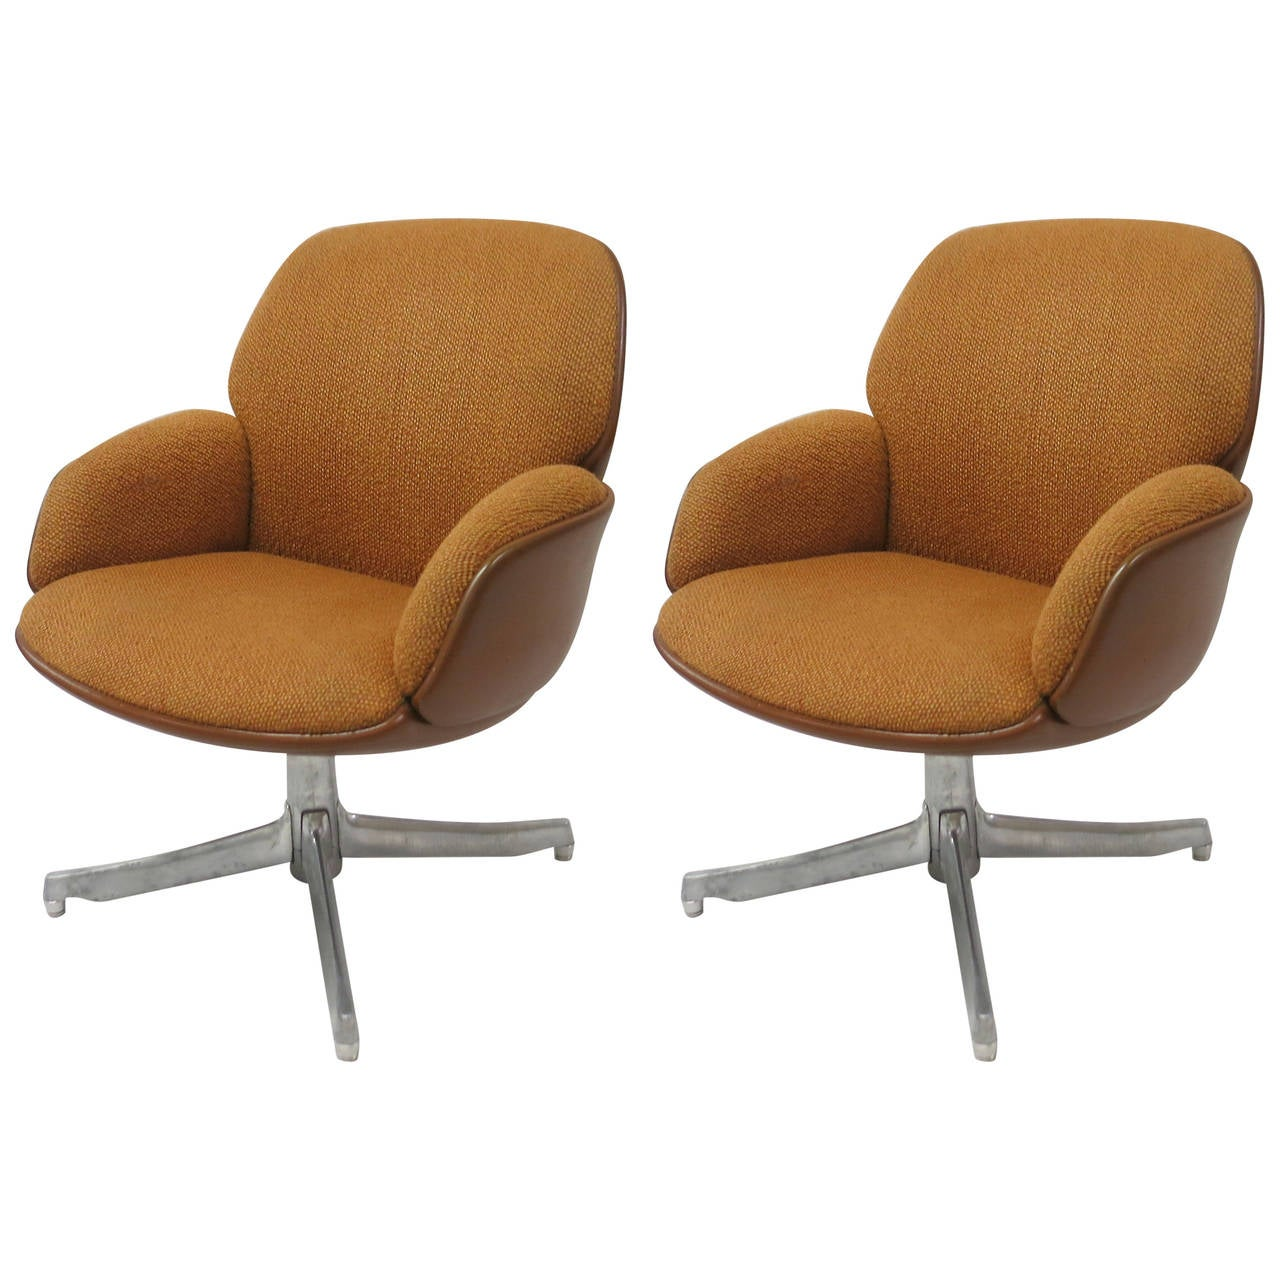 Pair of Chairs by Warren Platner for Steelcase, USA Circa 1965